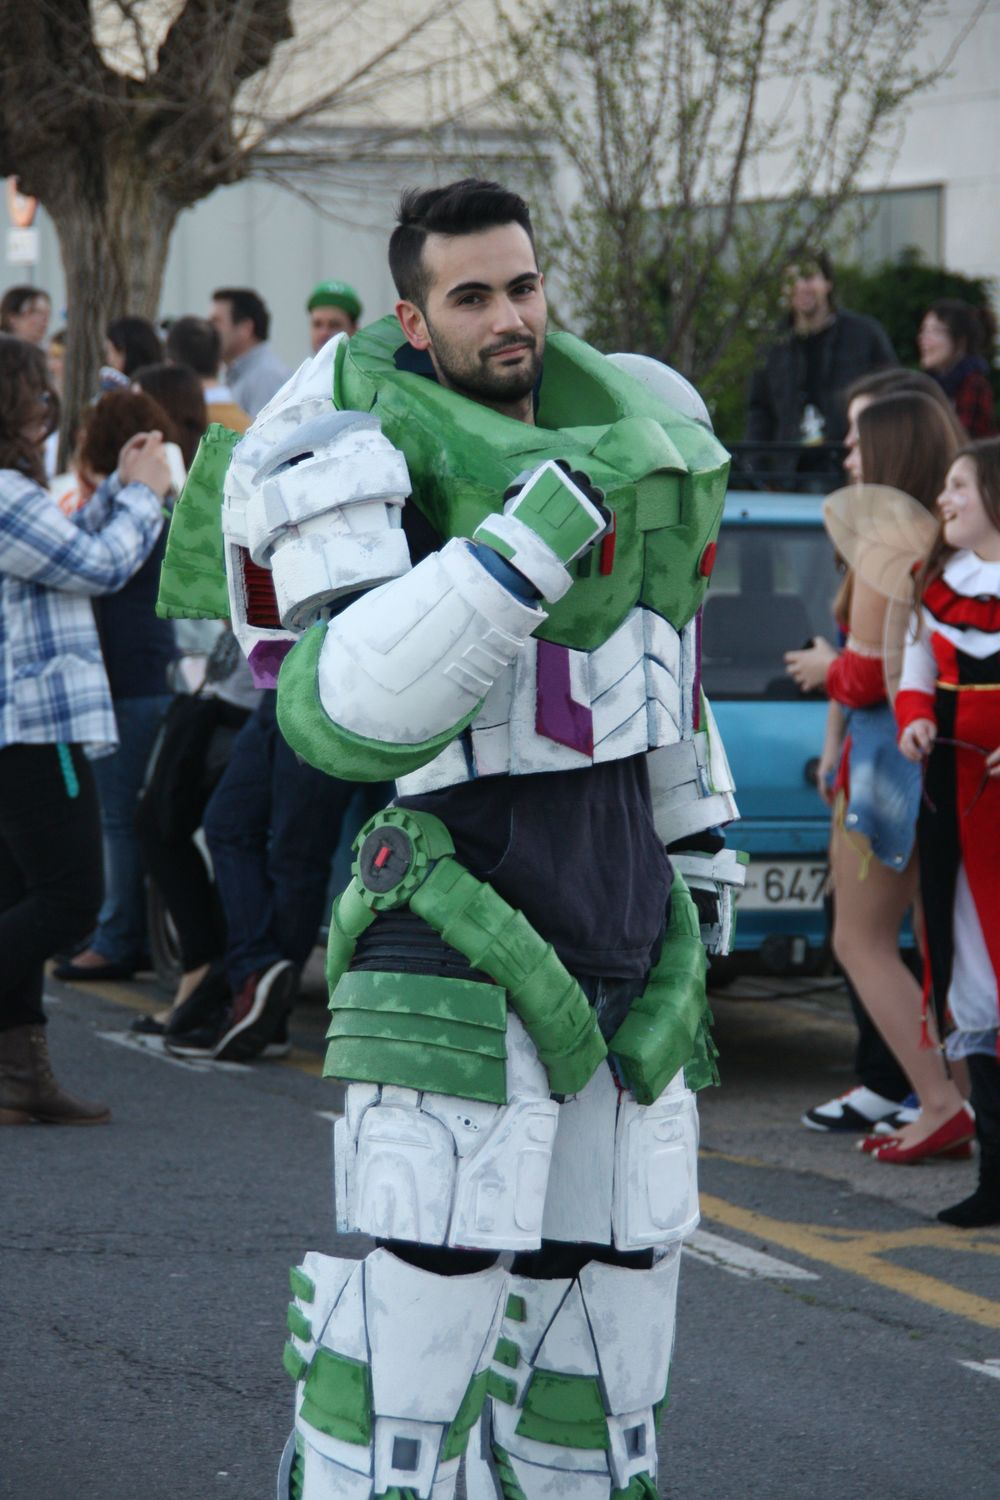 buzz-lightyear-space-marine-cosplay-mashup